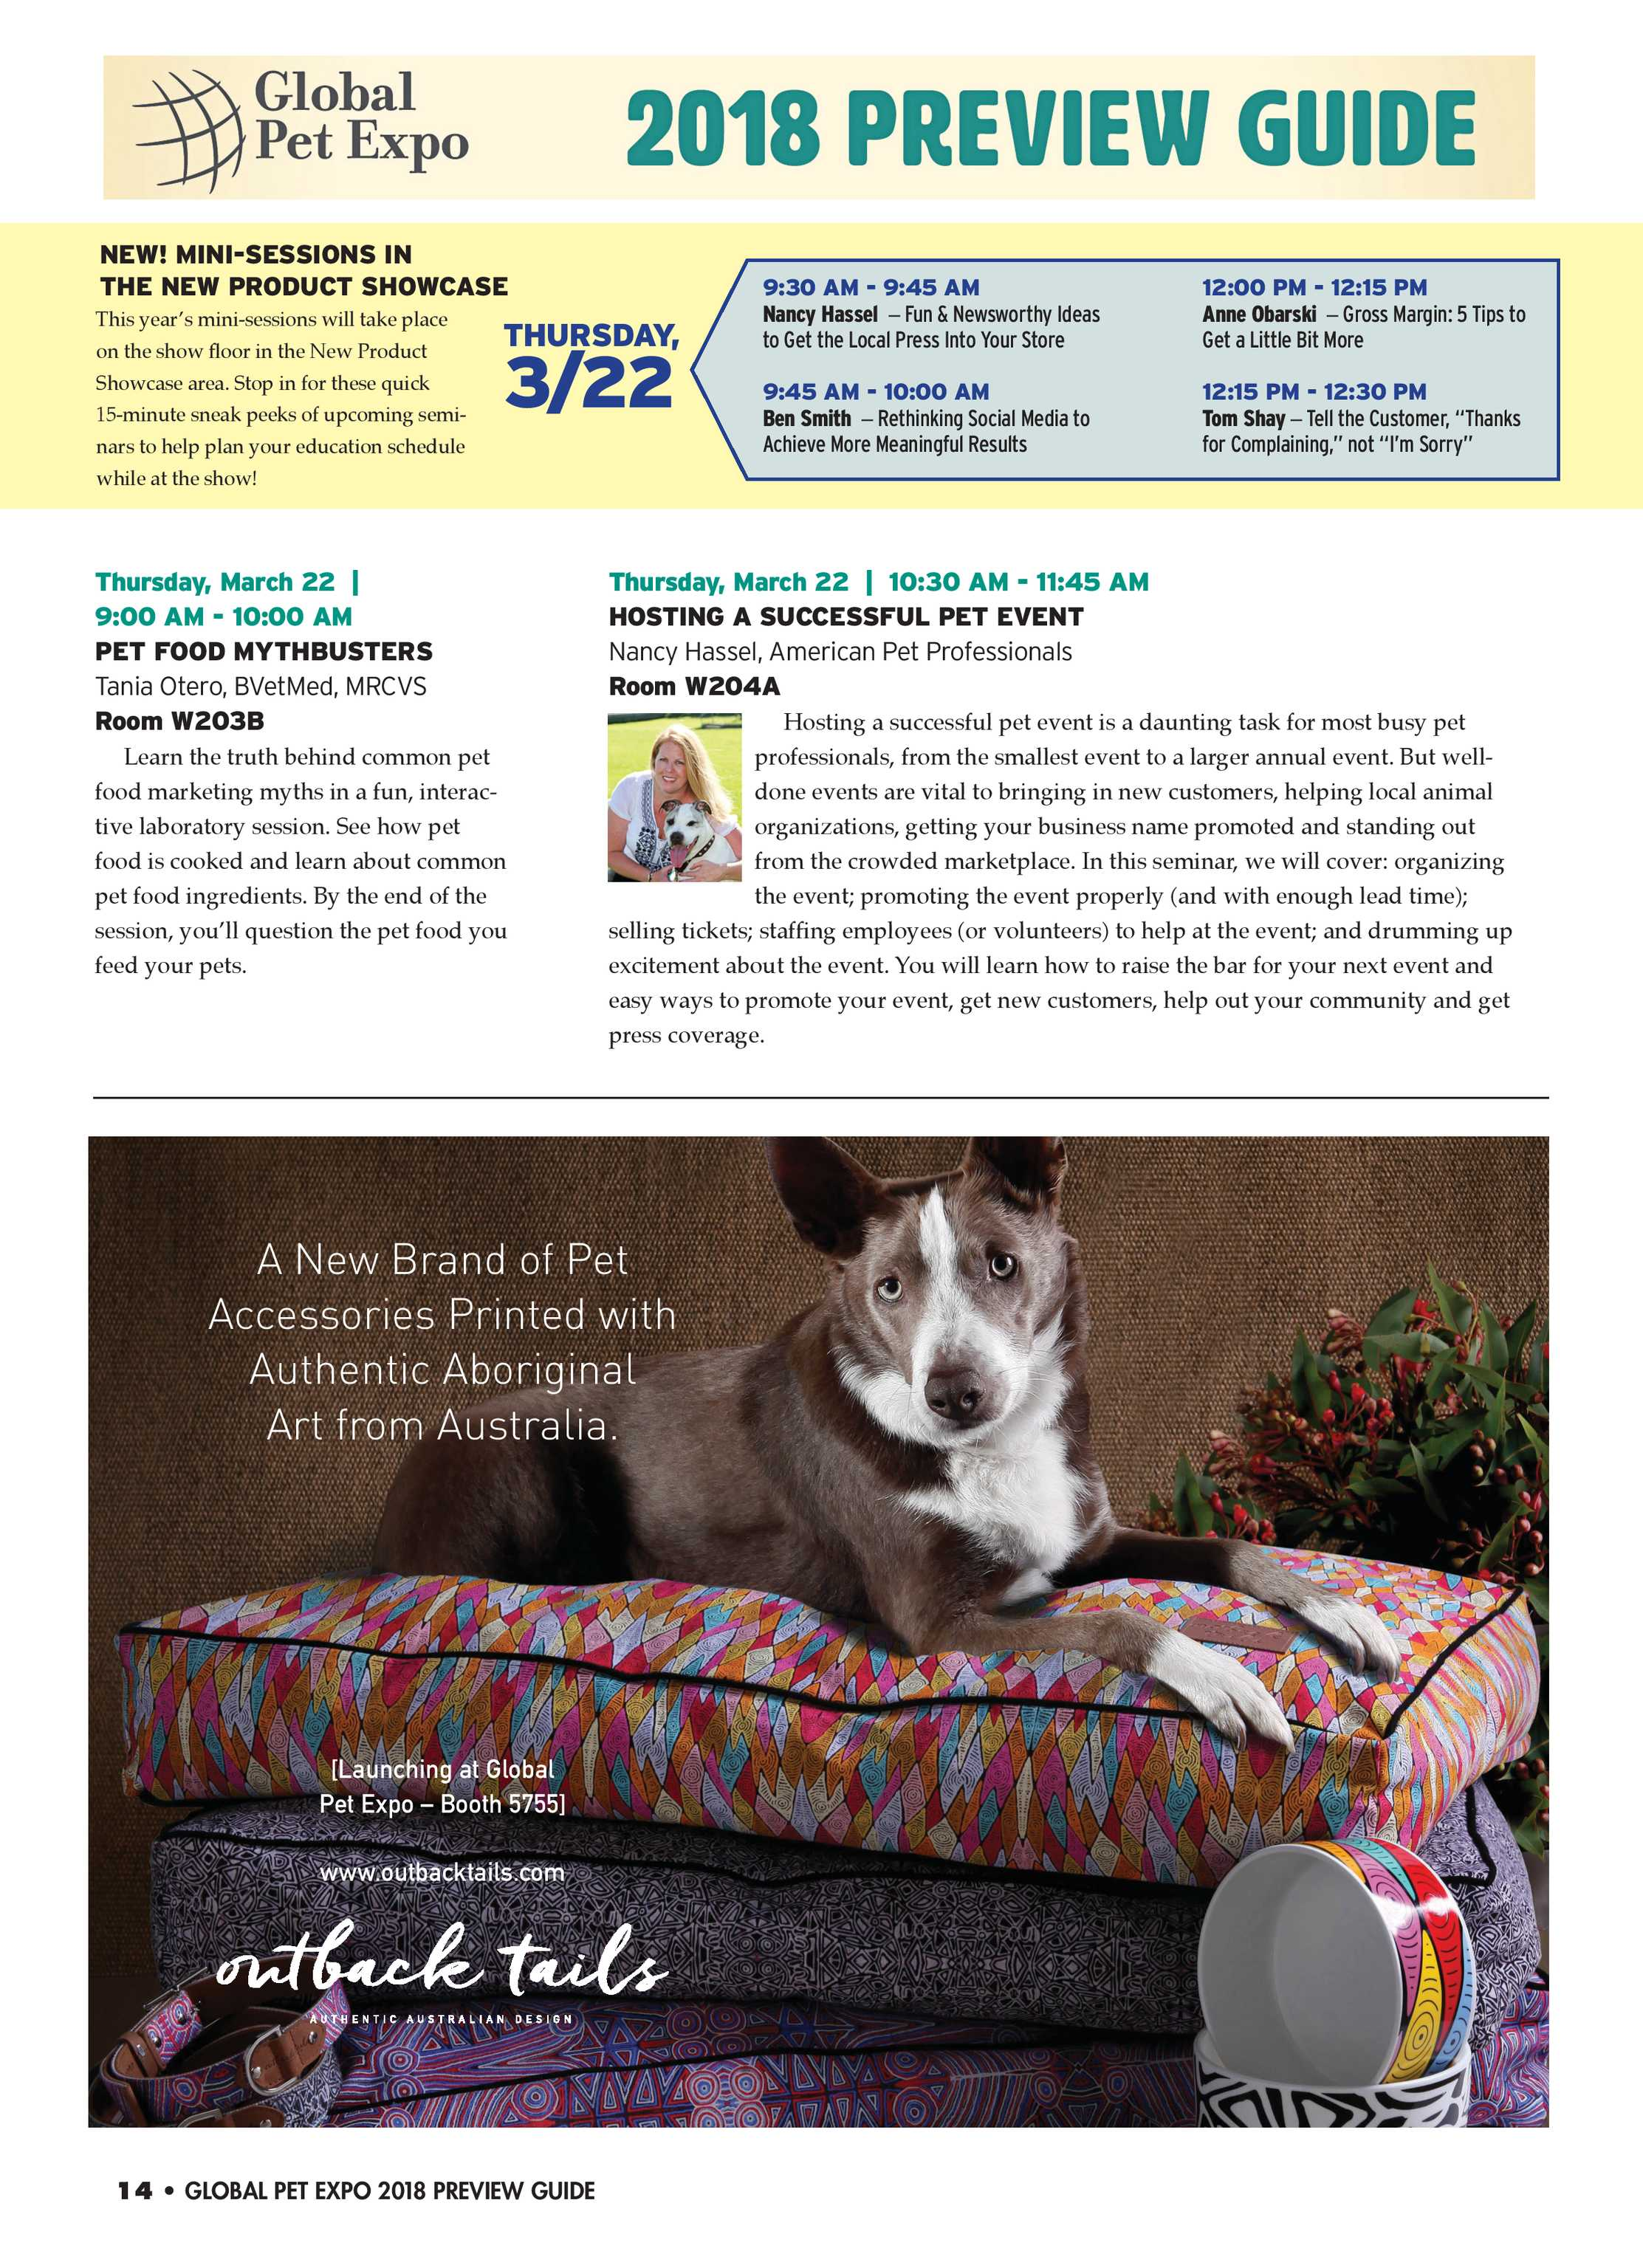 Pet Business - February 2018 - page 14